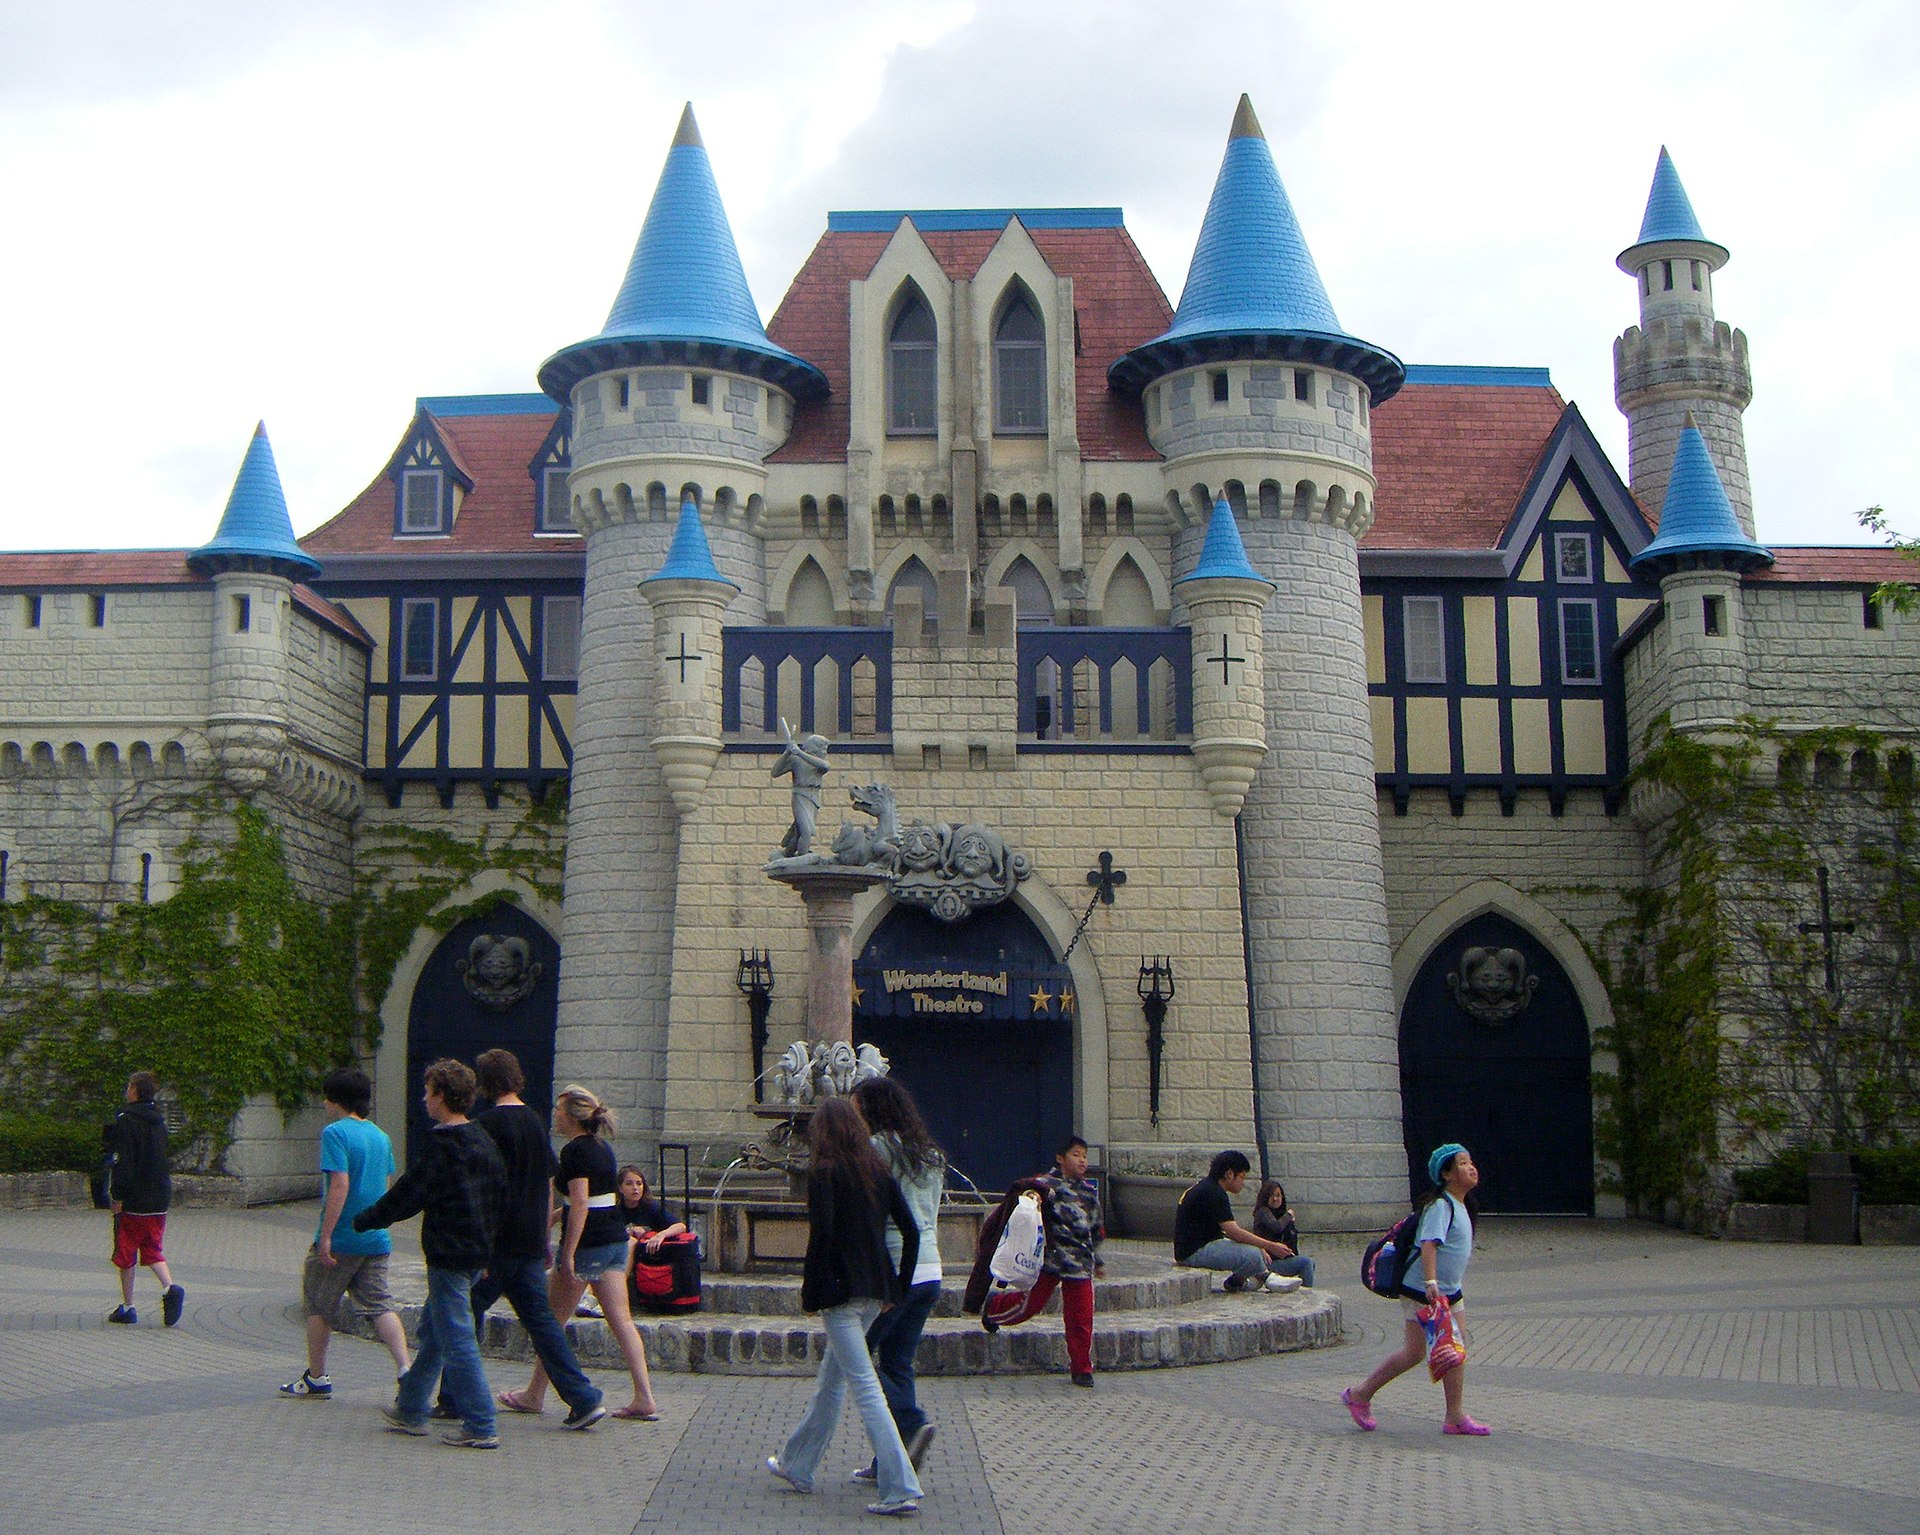 Medieval Faire (Canada's Wonderland) - Wikipedia